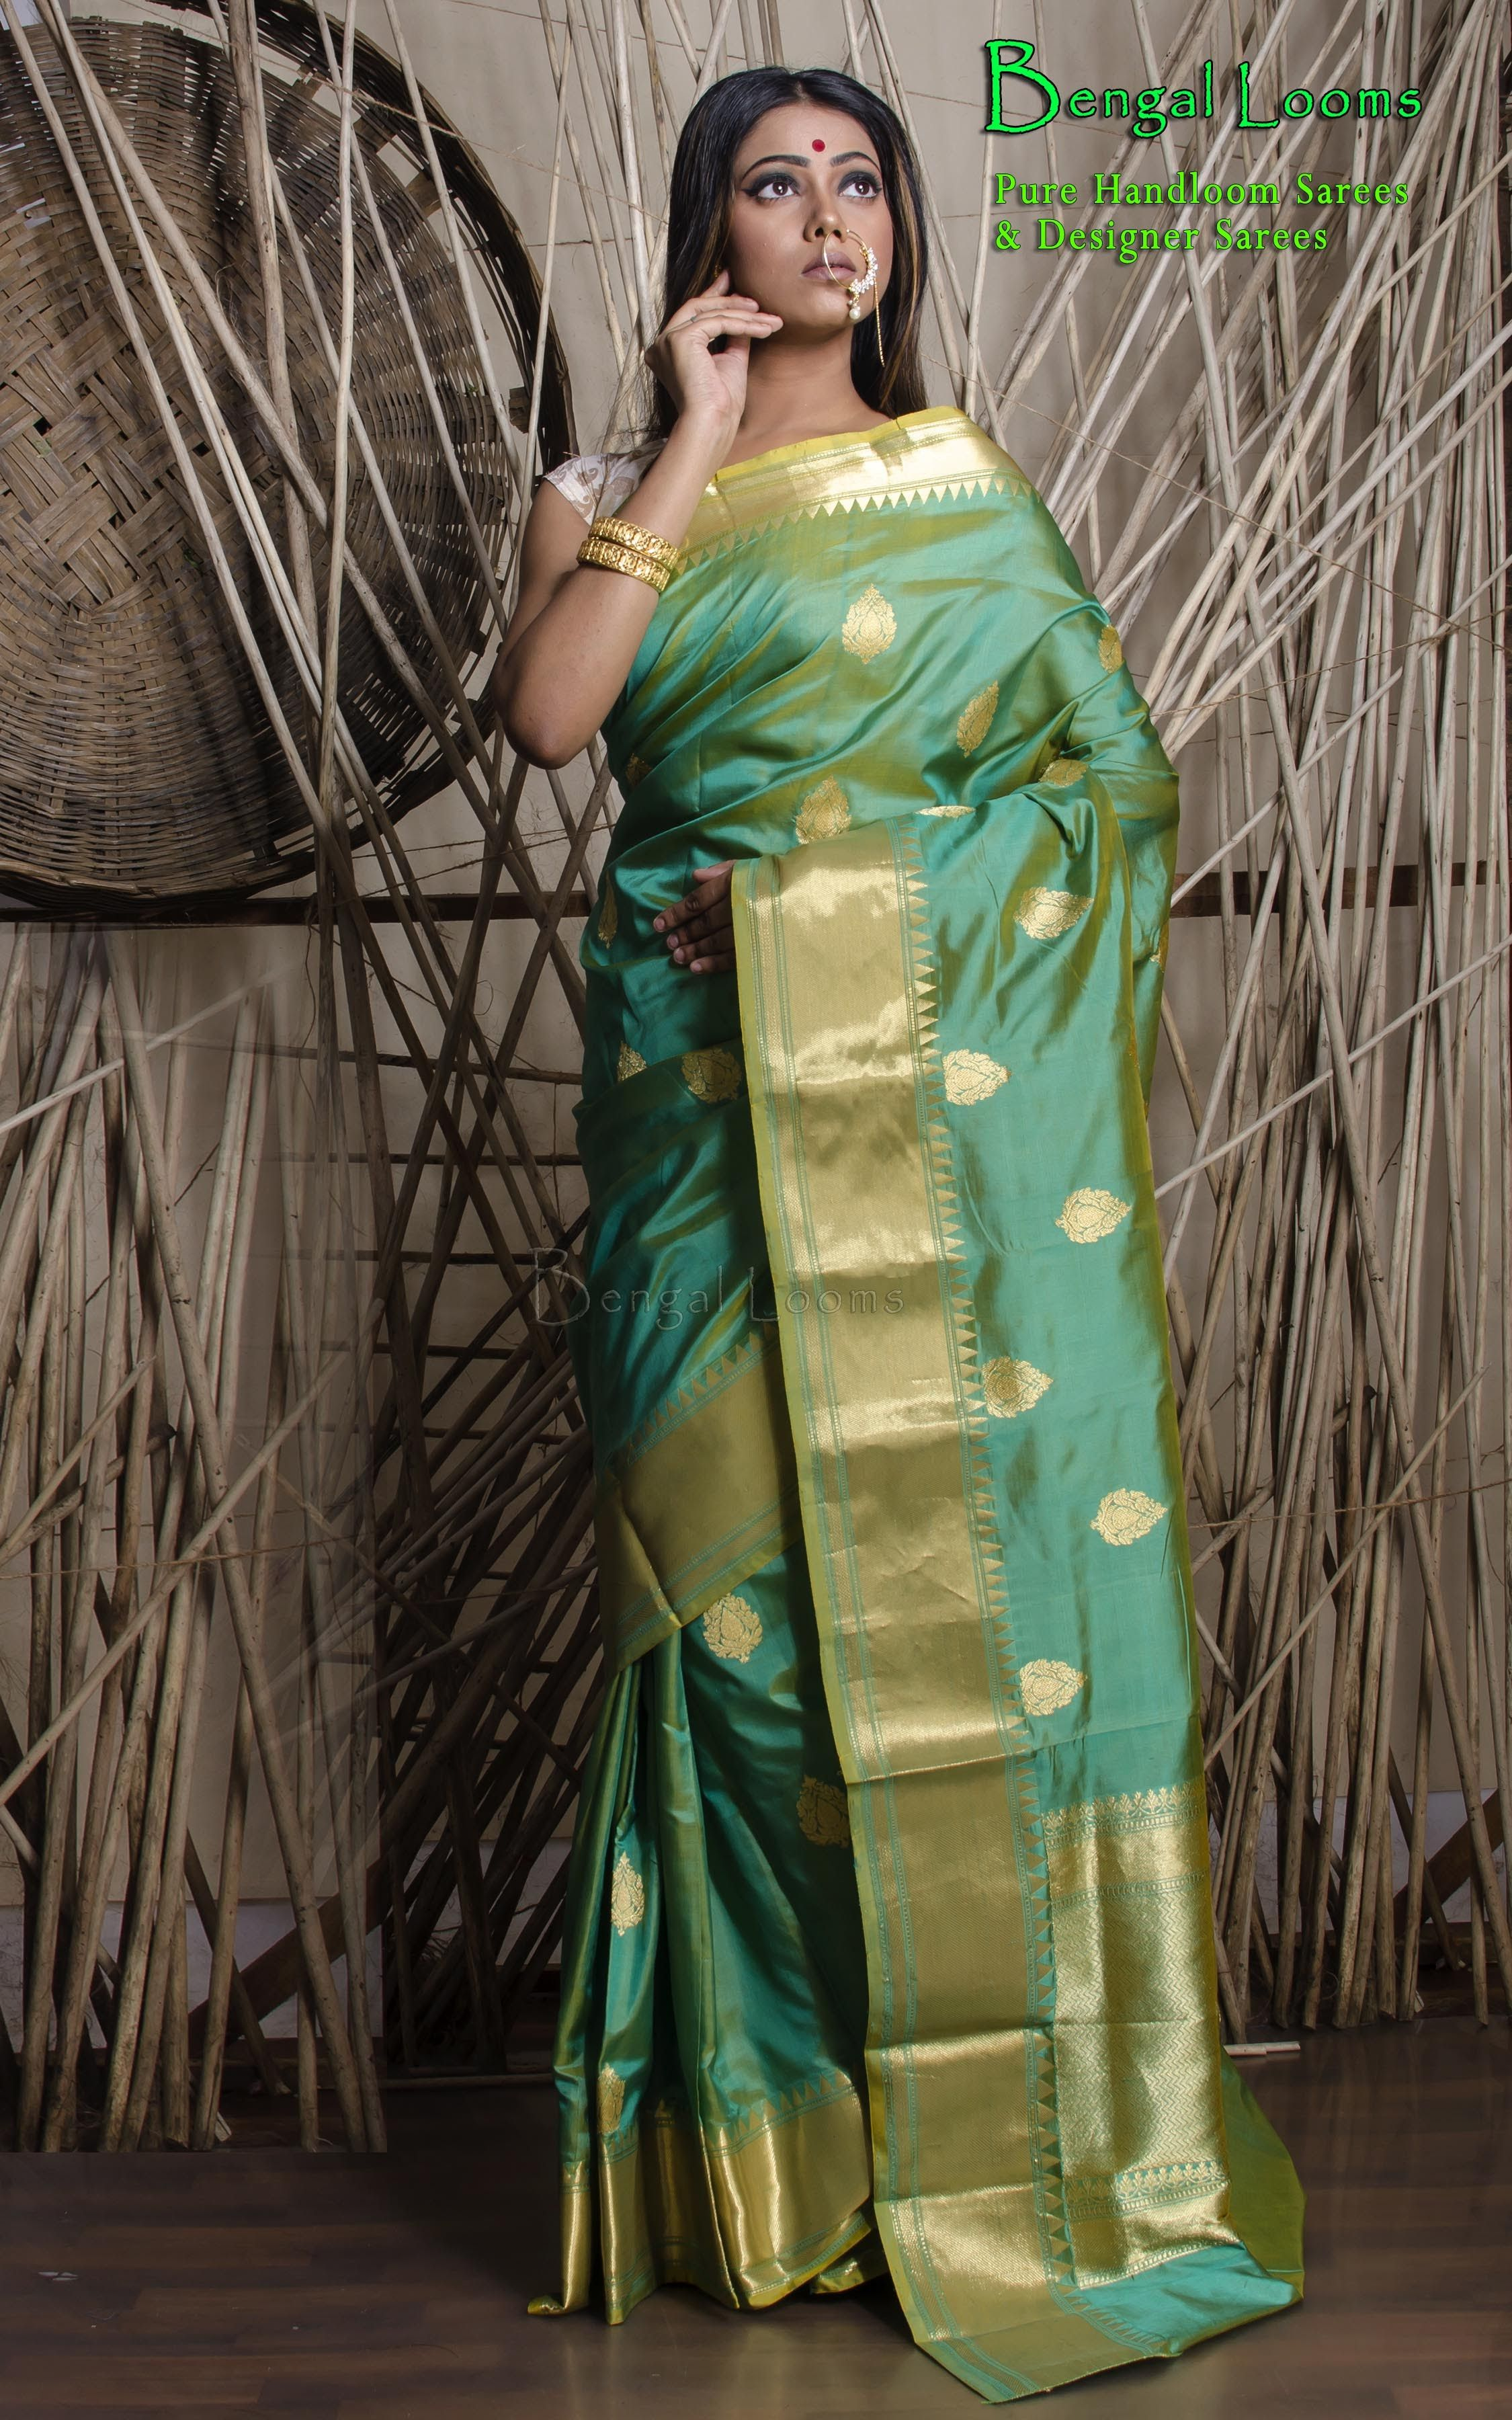 b9ada9e5e9 Beautiful Sea Green Katan Silk Banarasi Saree available for sale from  Bengal Looms.